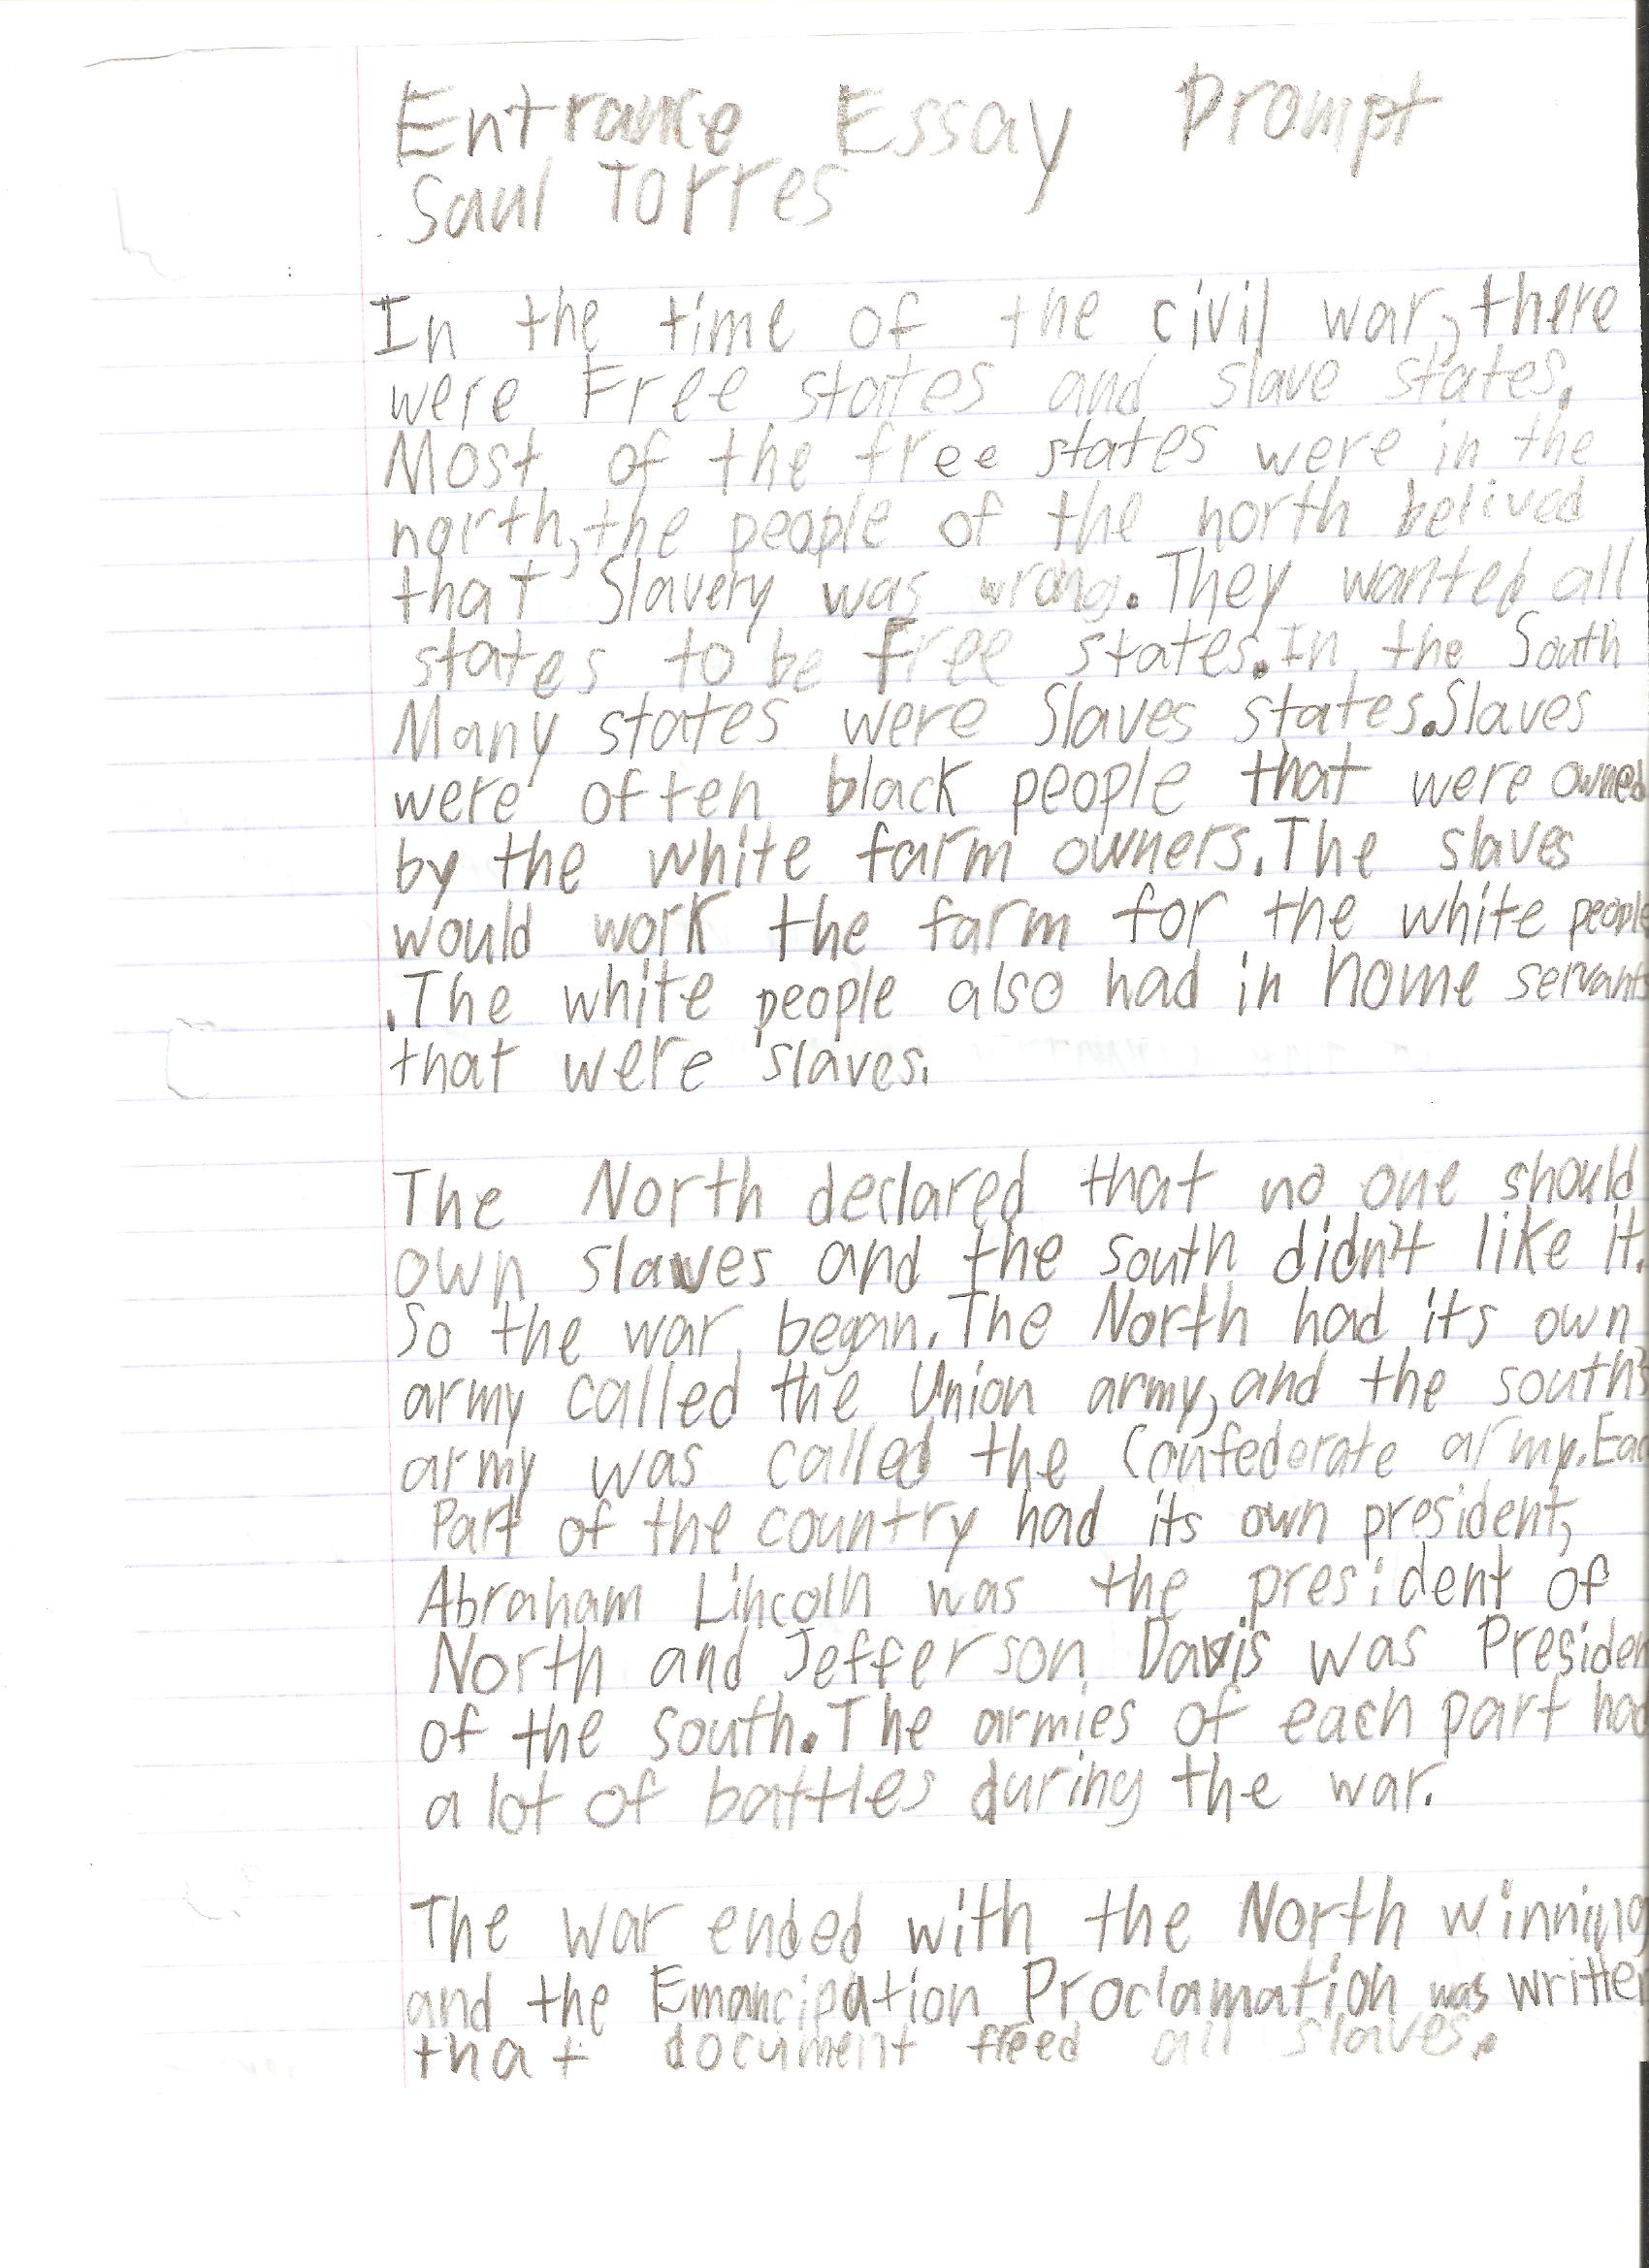 009 Saul Torres Essay Example 6th Grade Fantastic Examples Narrative Writing Literary Full